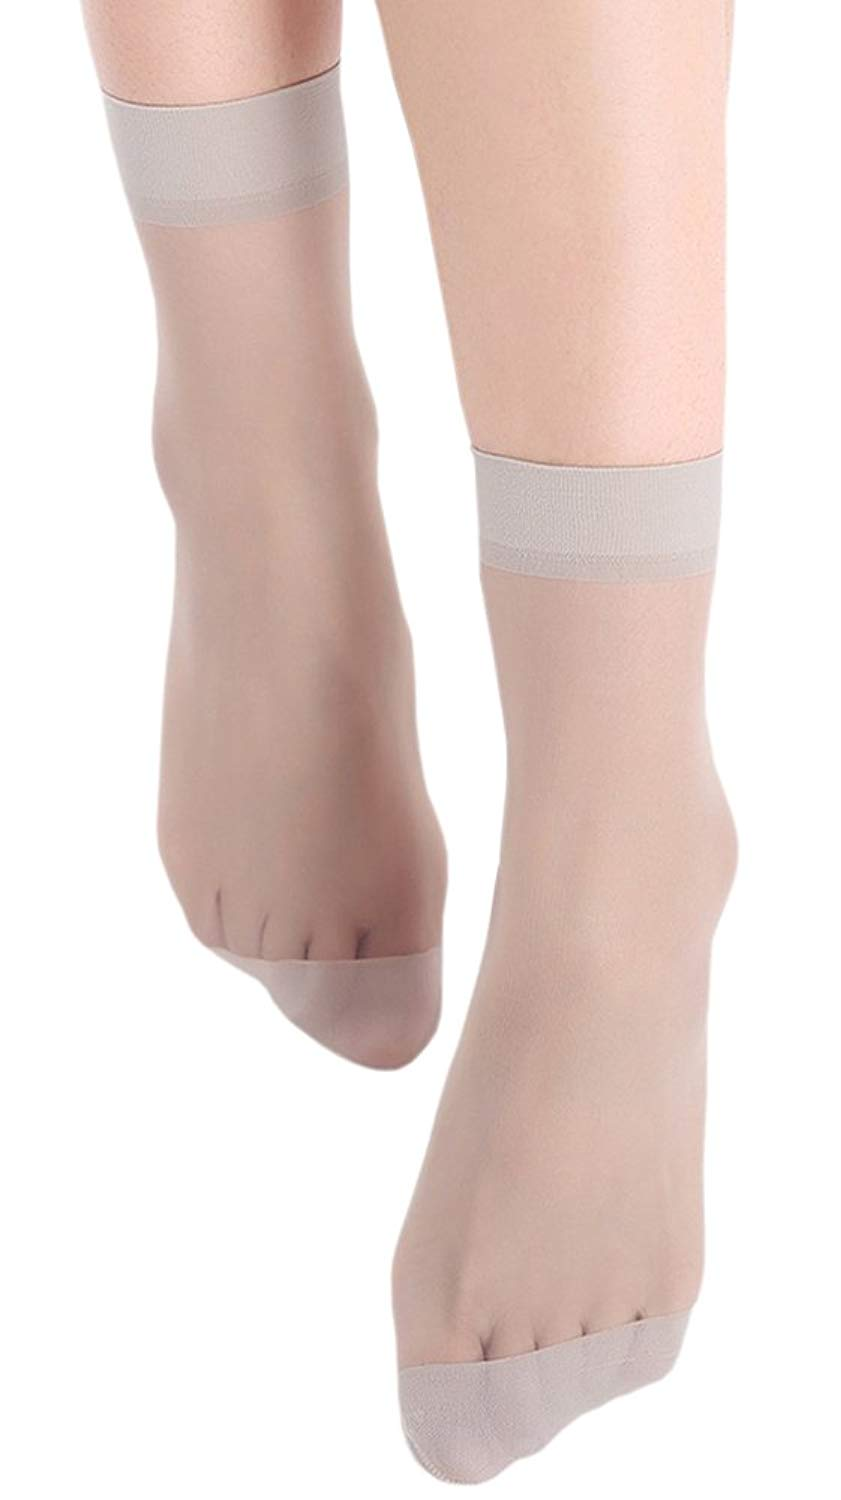 e090d81f2 Get Quotations · X&F Womens' Silky 15D Sheer Nylon Ankle High Tights  Hosiery Socks(Pack of 5